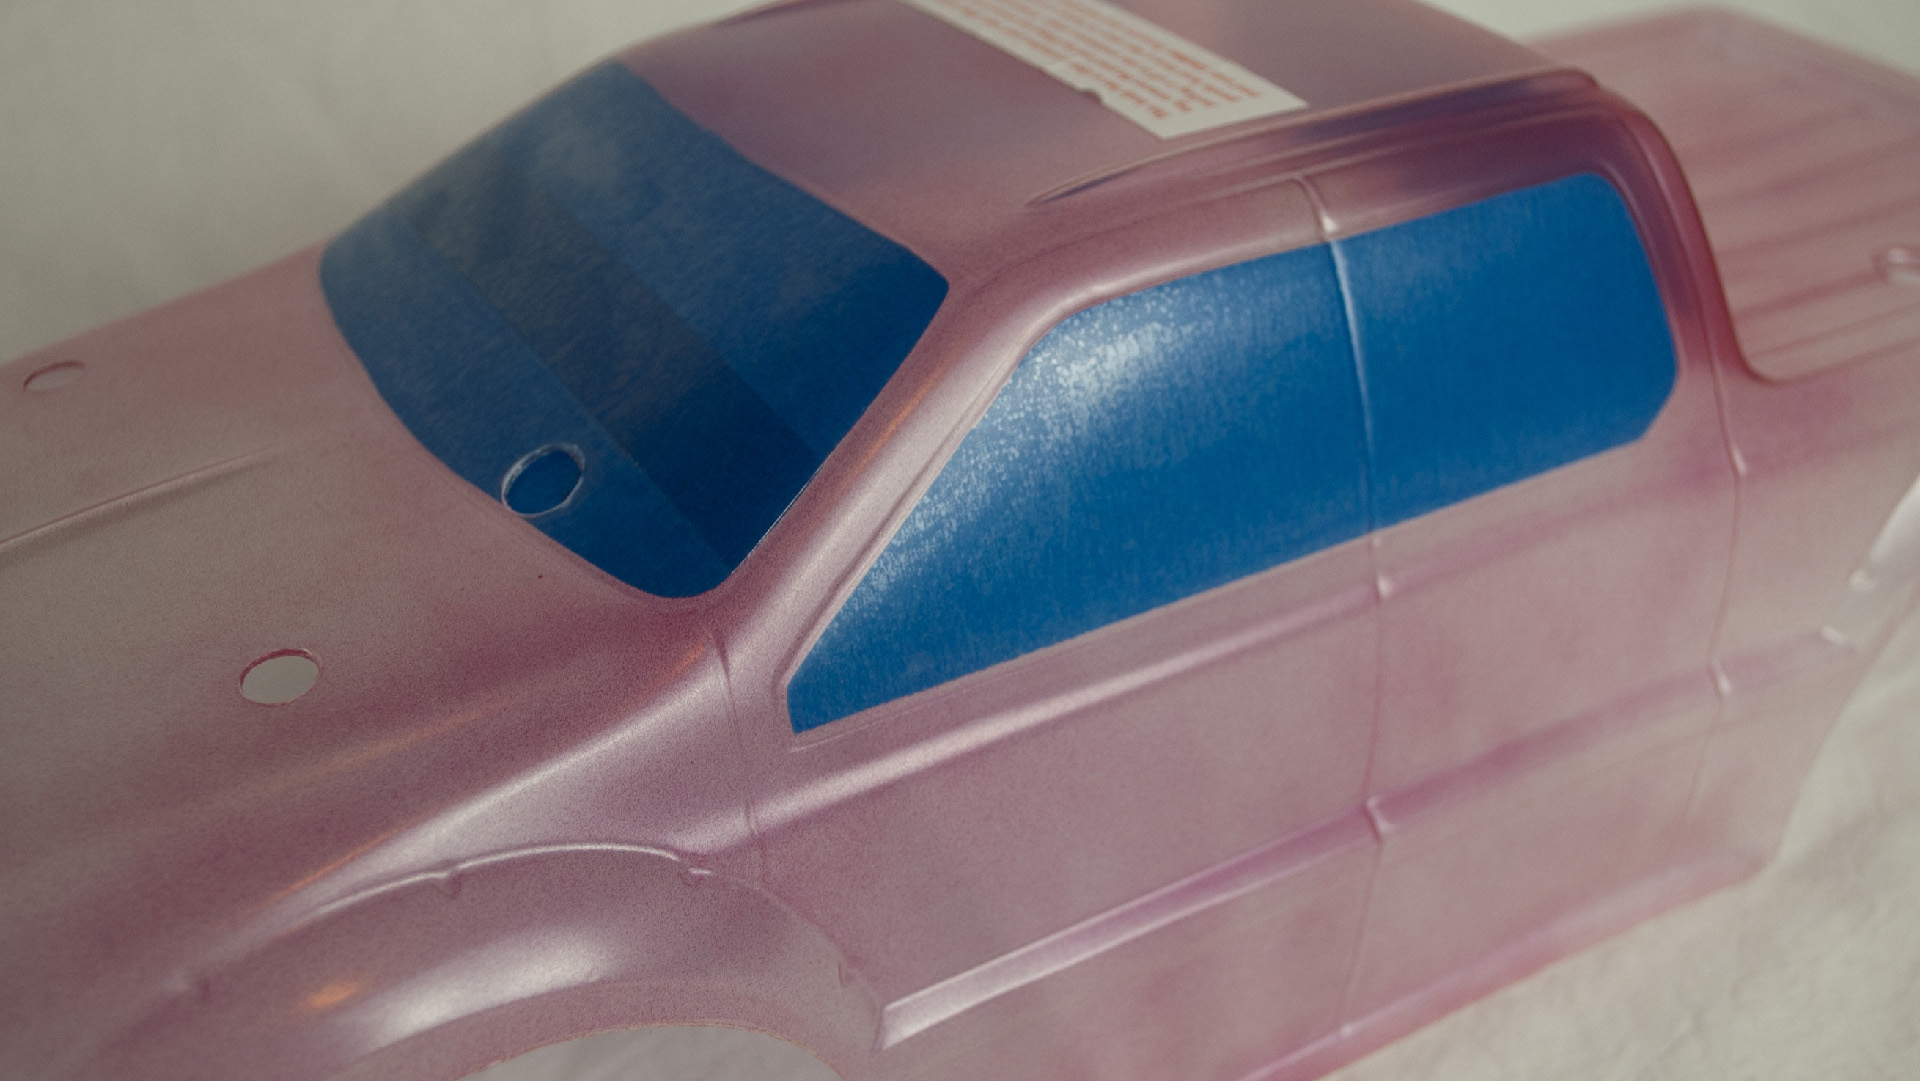 How to get started in hobby rc body painting your vehicles tested the first coat of any color should be a very light mist to help seal the edges of the masking material and ensure a drip free finish solutioingenieria Choice Image